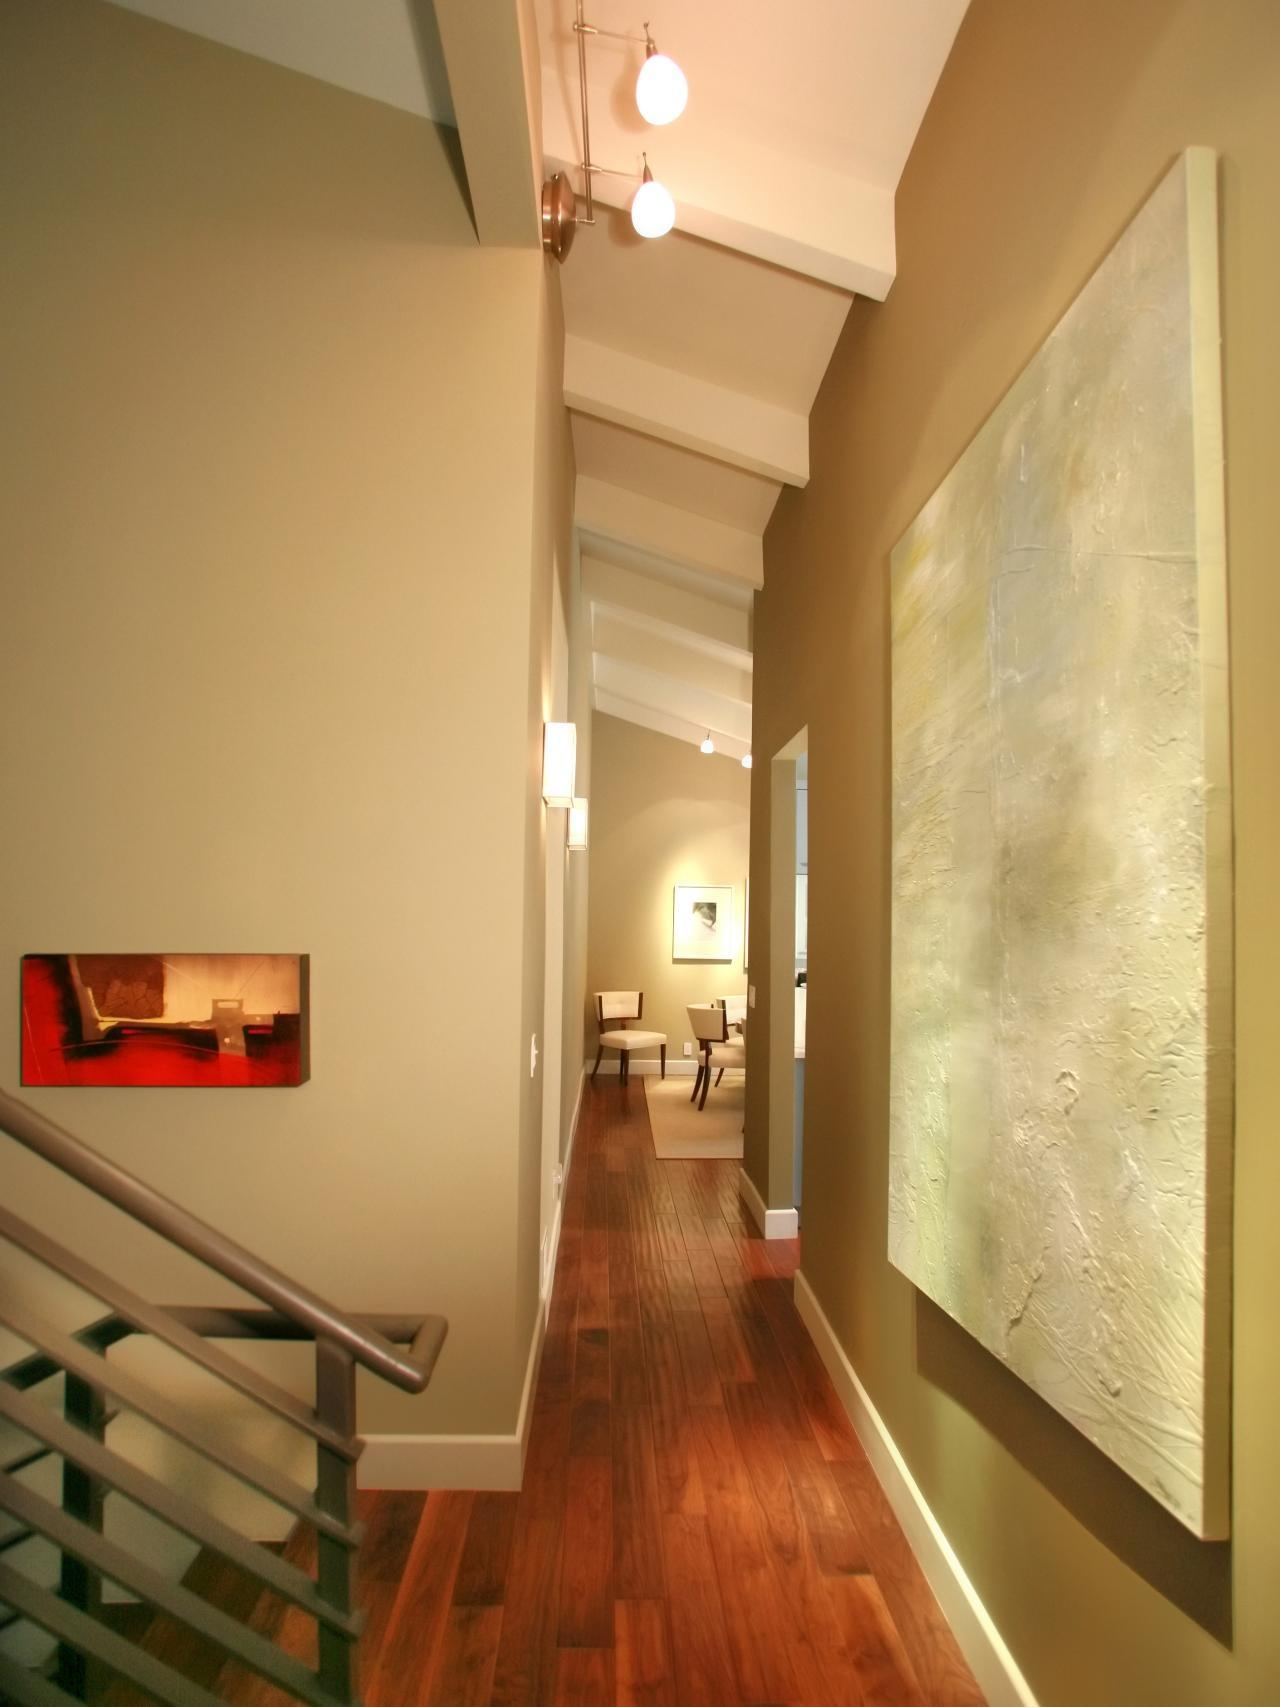 Photos Hgtv Contemporary Hallway With Vibrant Wall Art ~ Arafen In Vibrant Wall Art (Image 16 of 20)